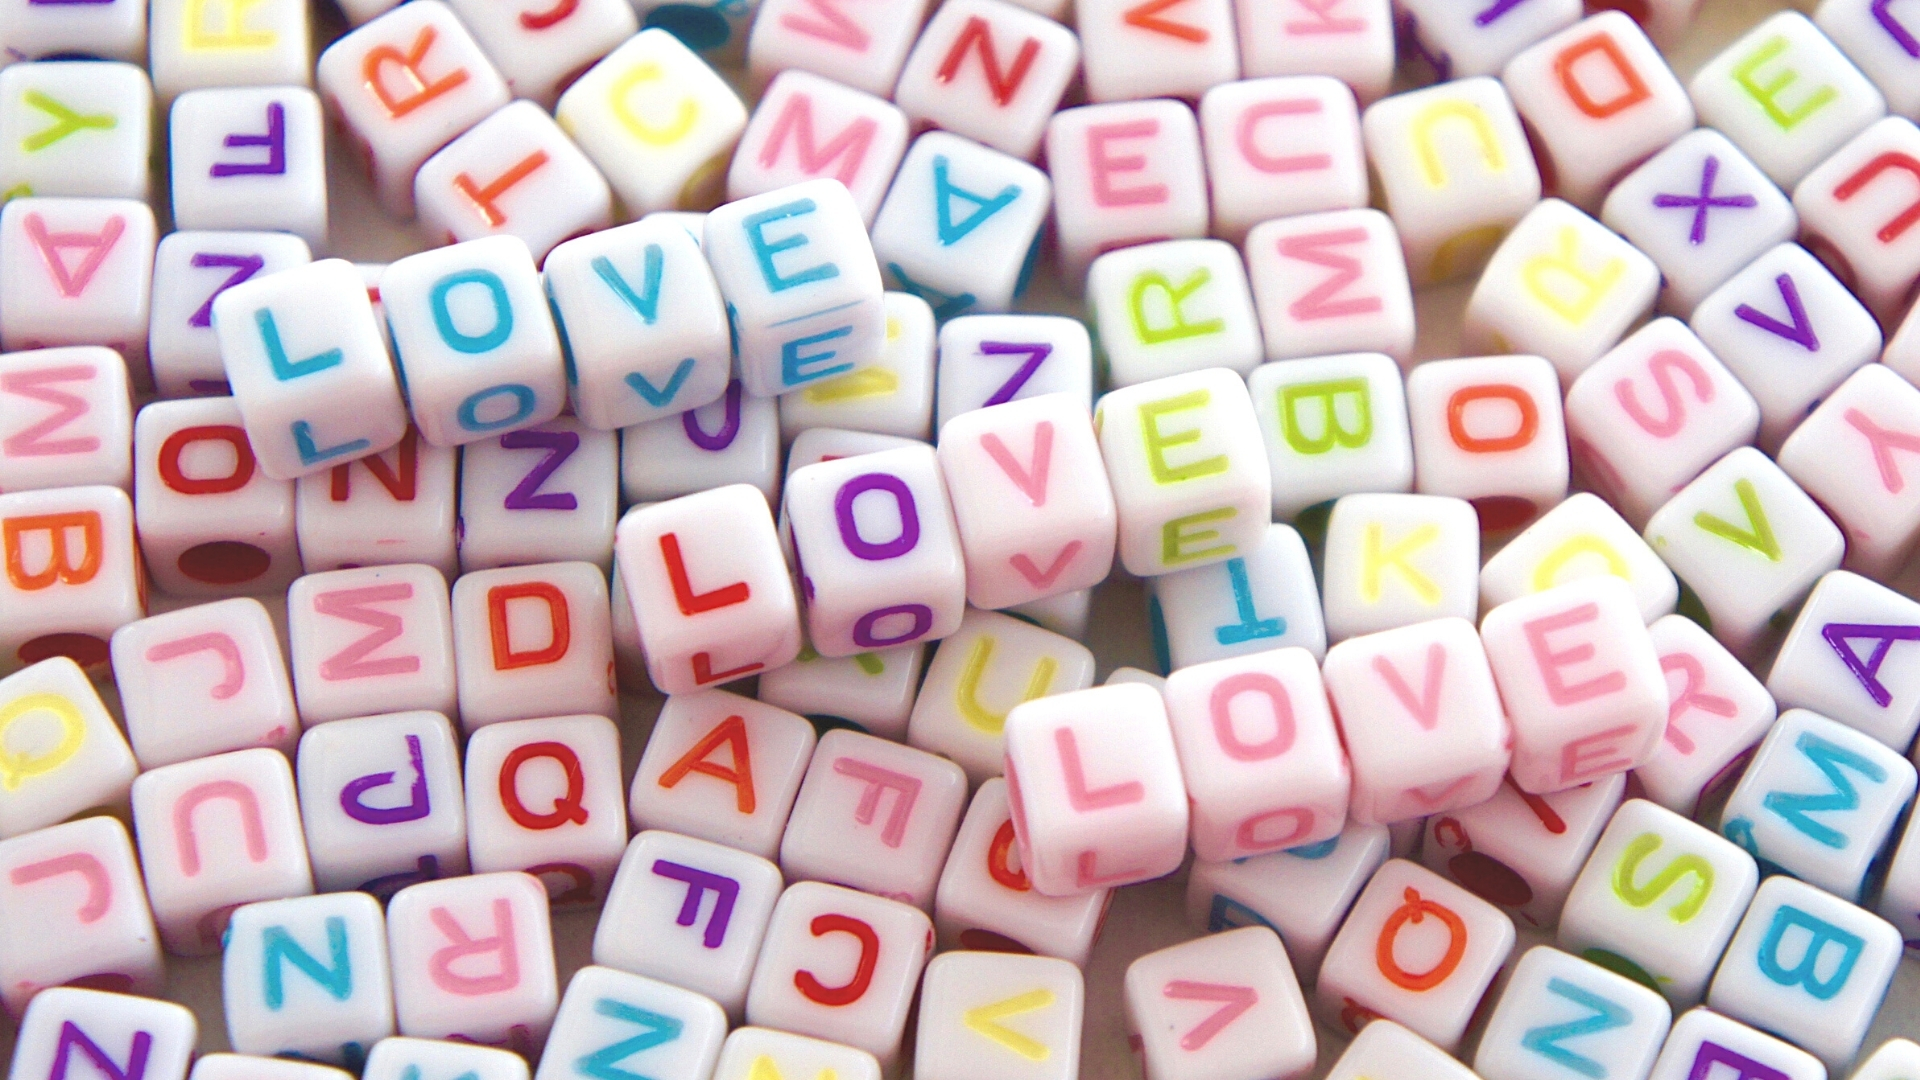 Love in letters of different colours - on top of a pile of other letter cubes